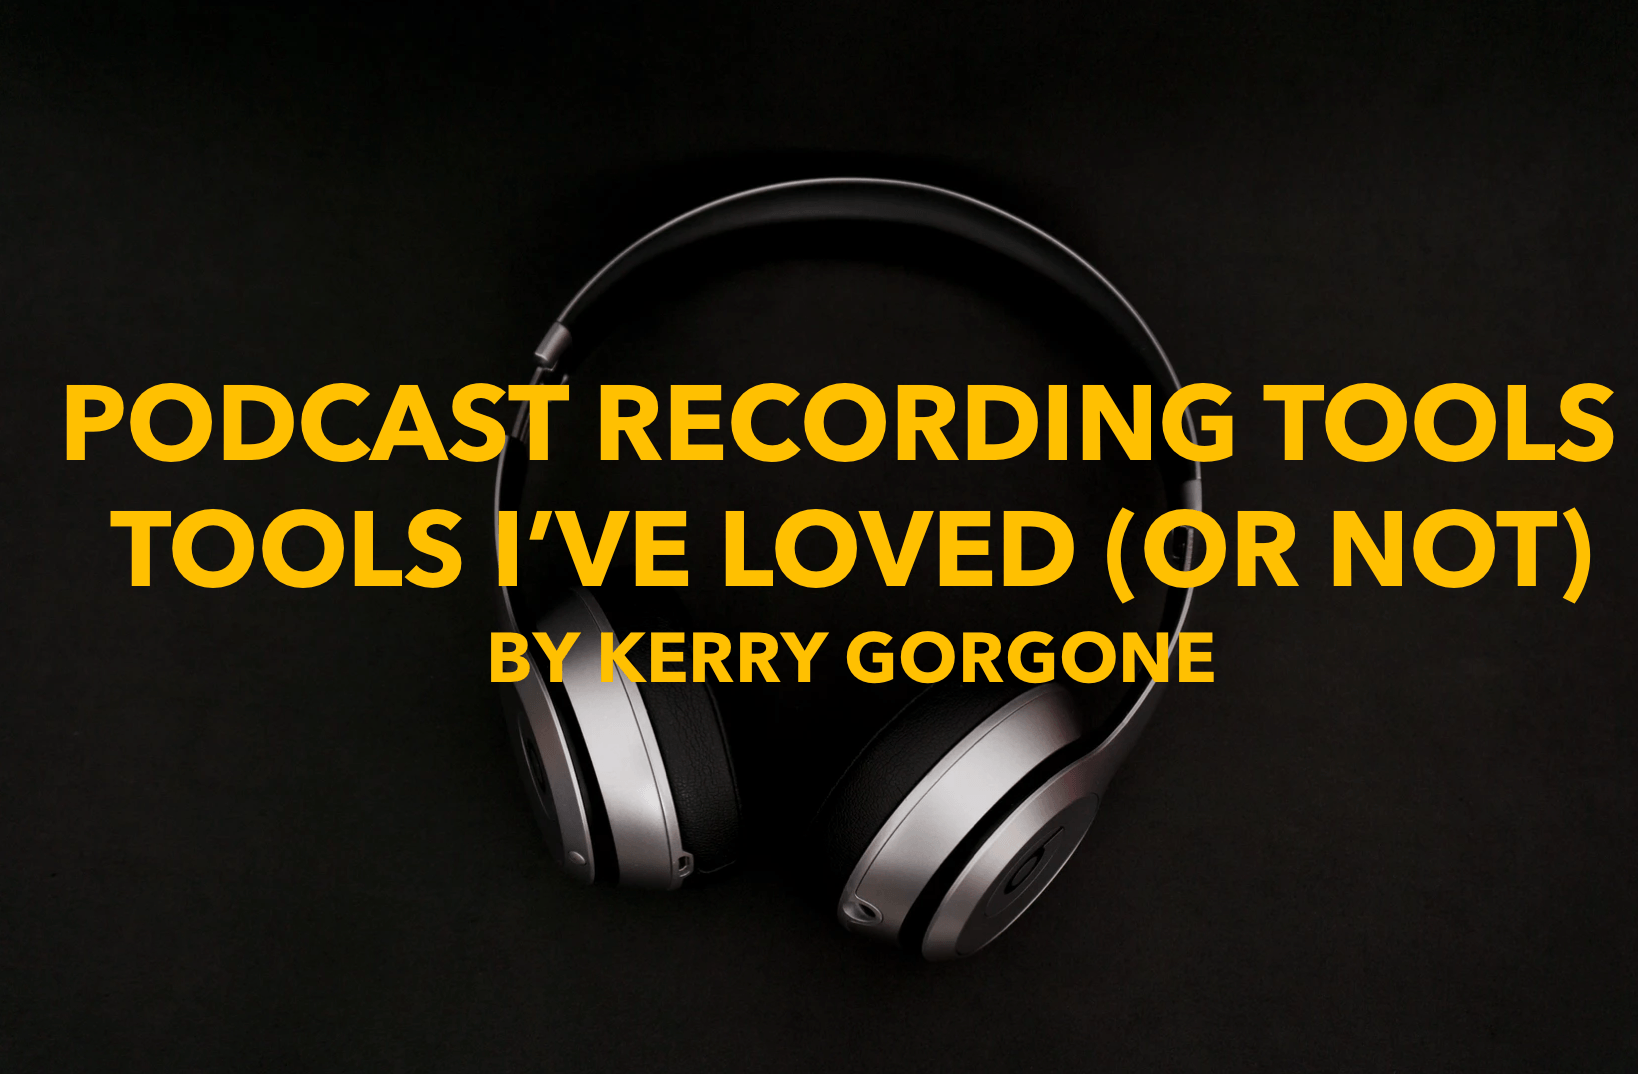 The Good, The Bad, and The Staticky: Podcast Recording Tools I've Loved (or Not)